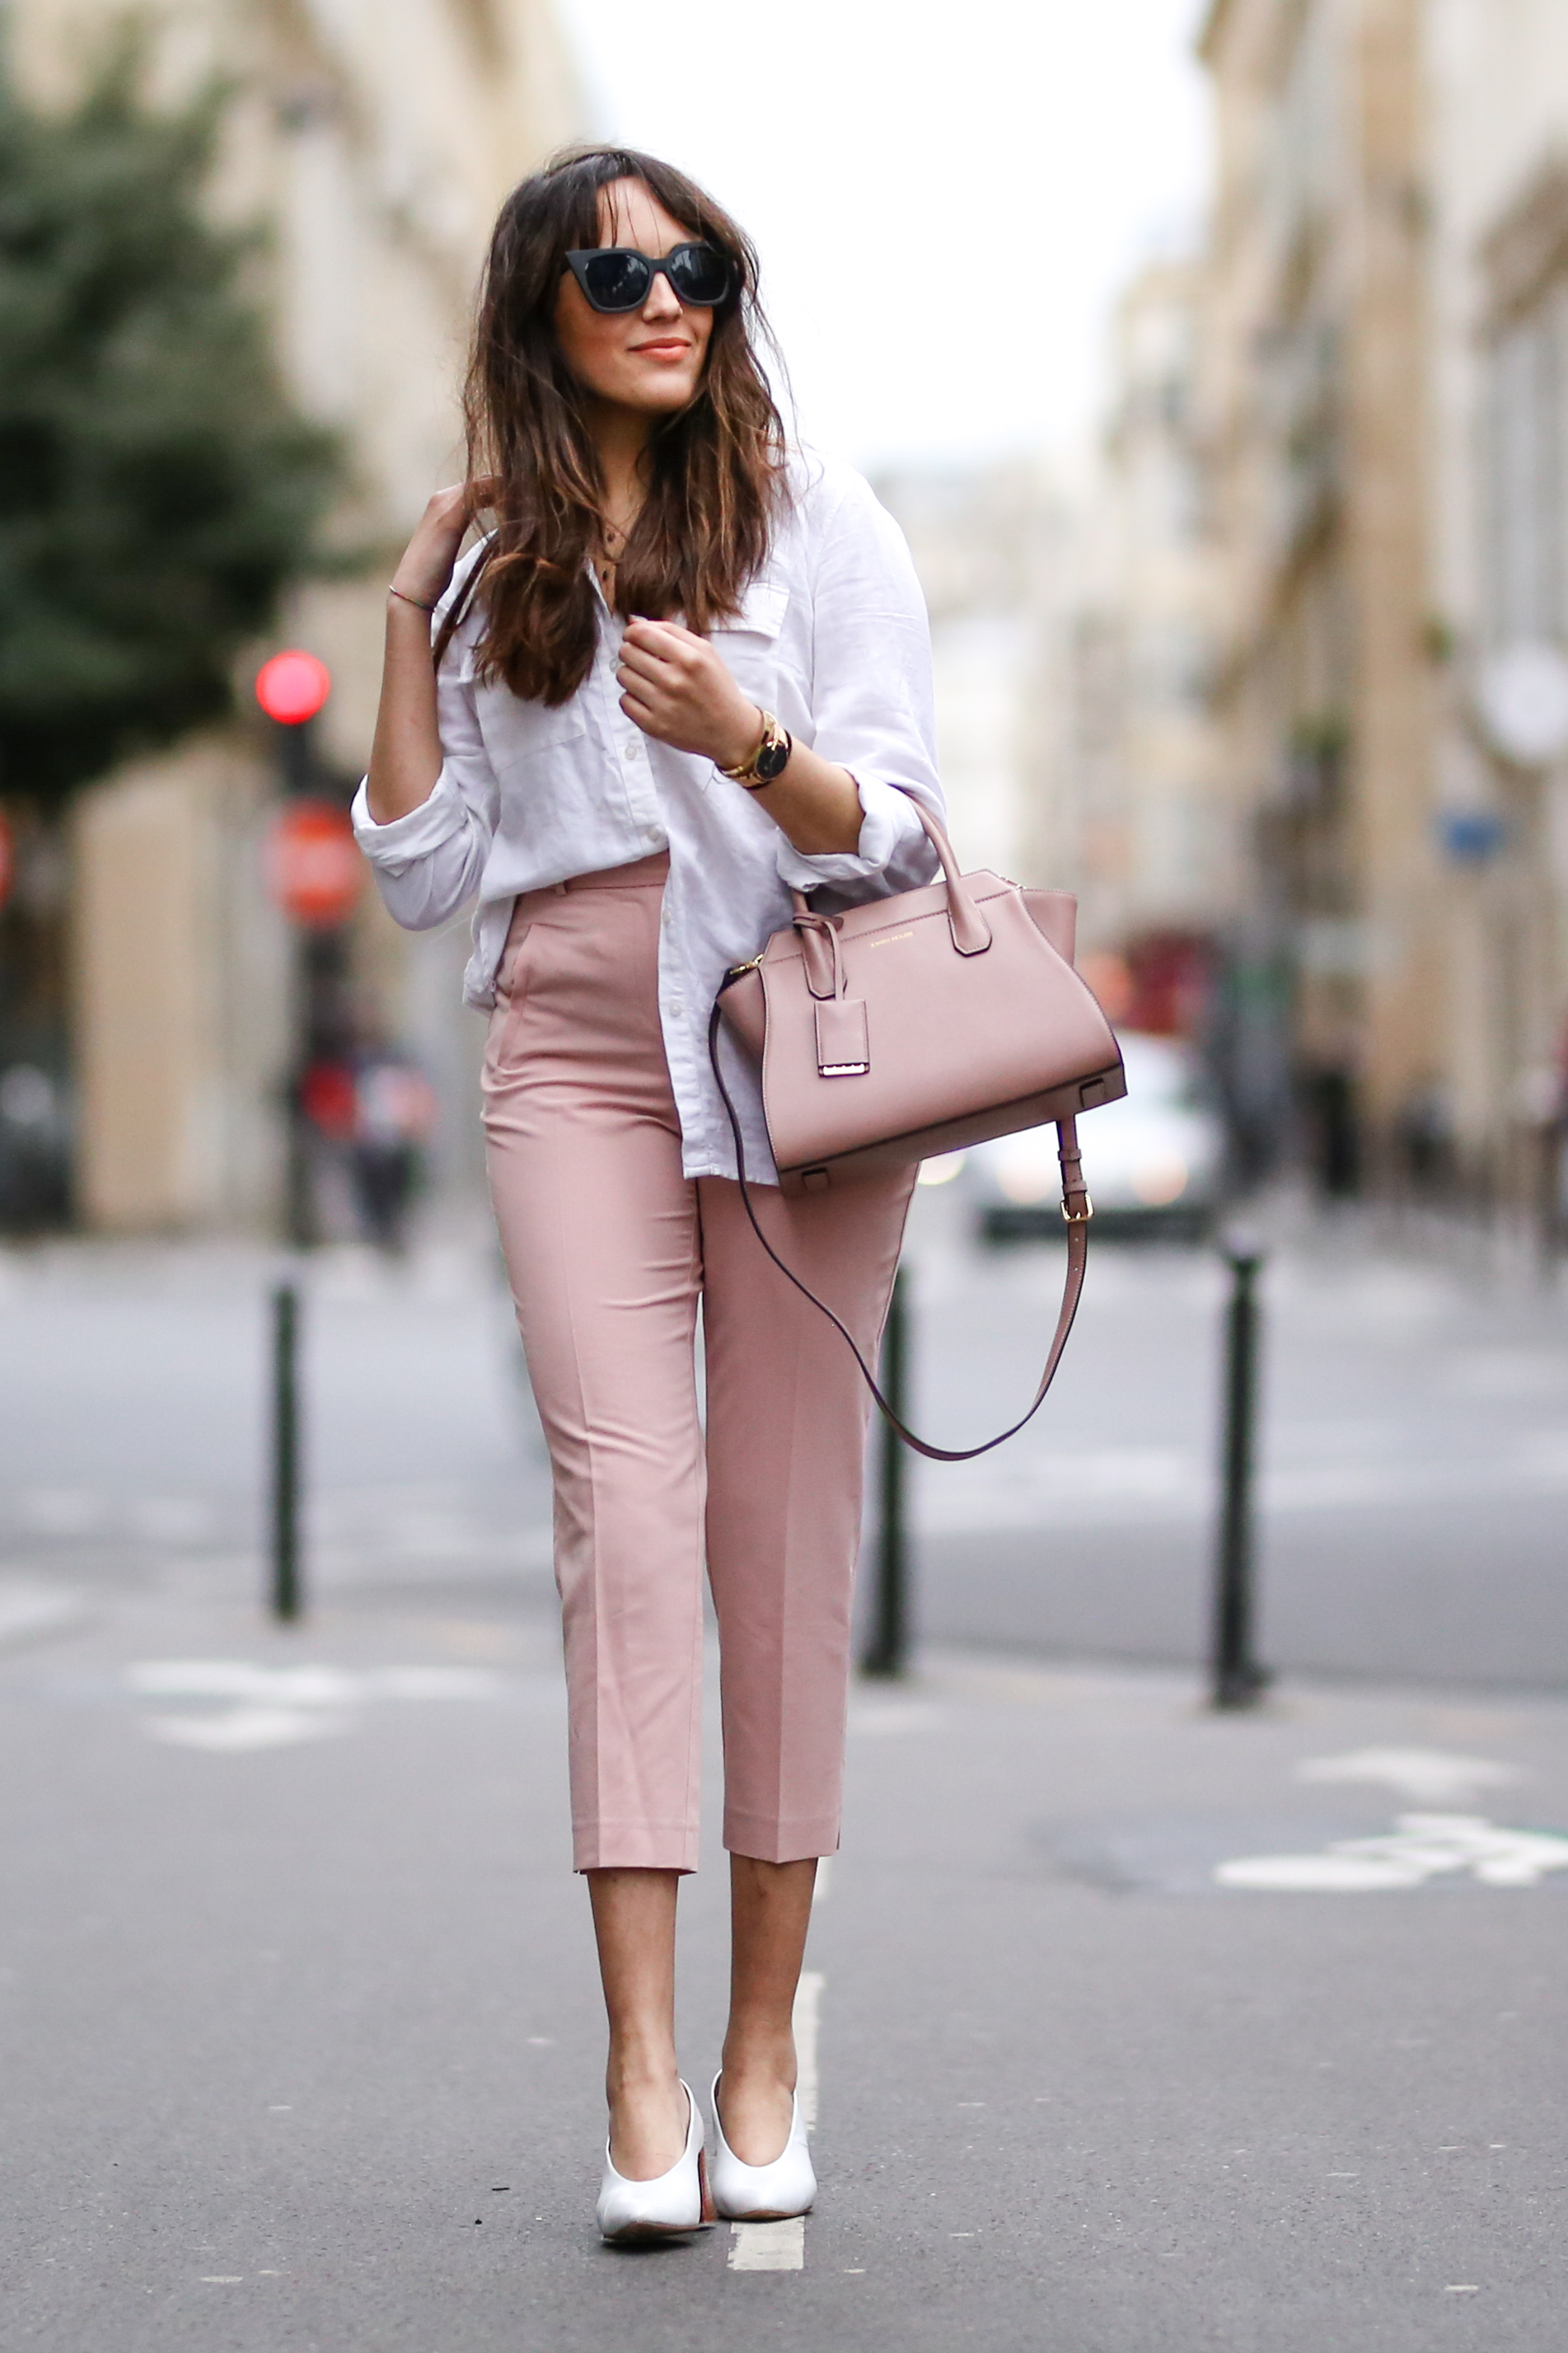 Street Style - Paris - March 2017